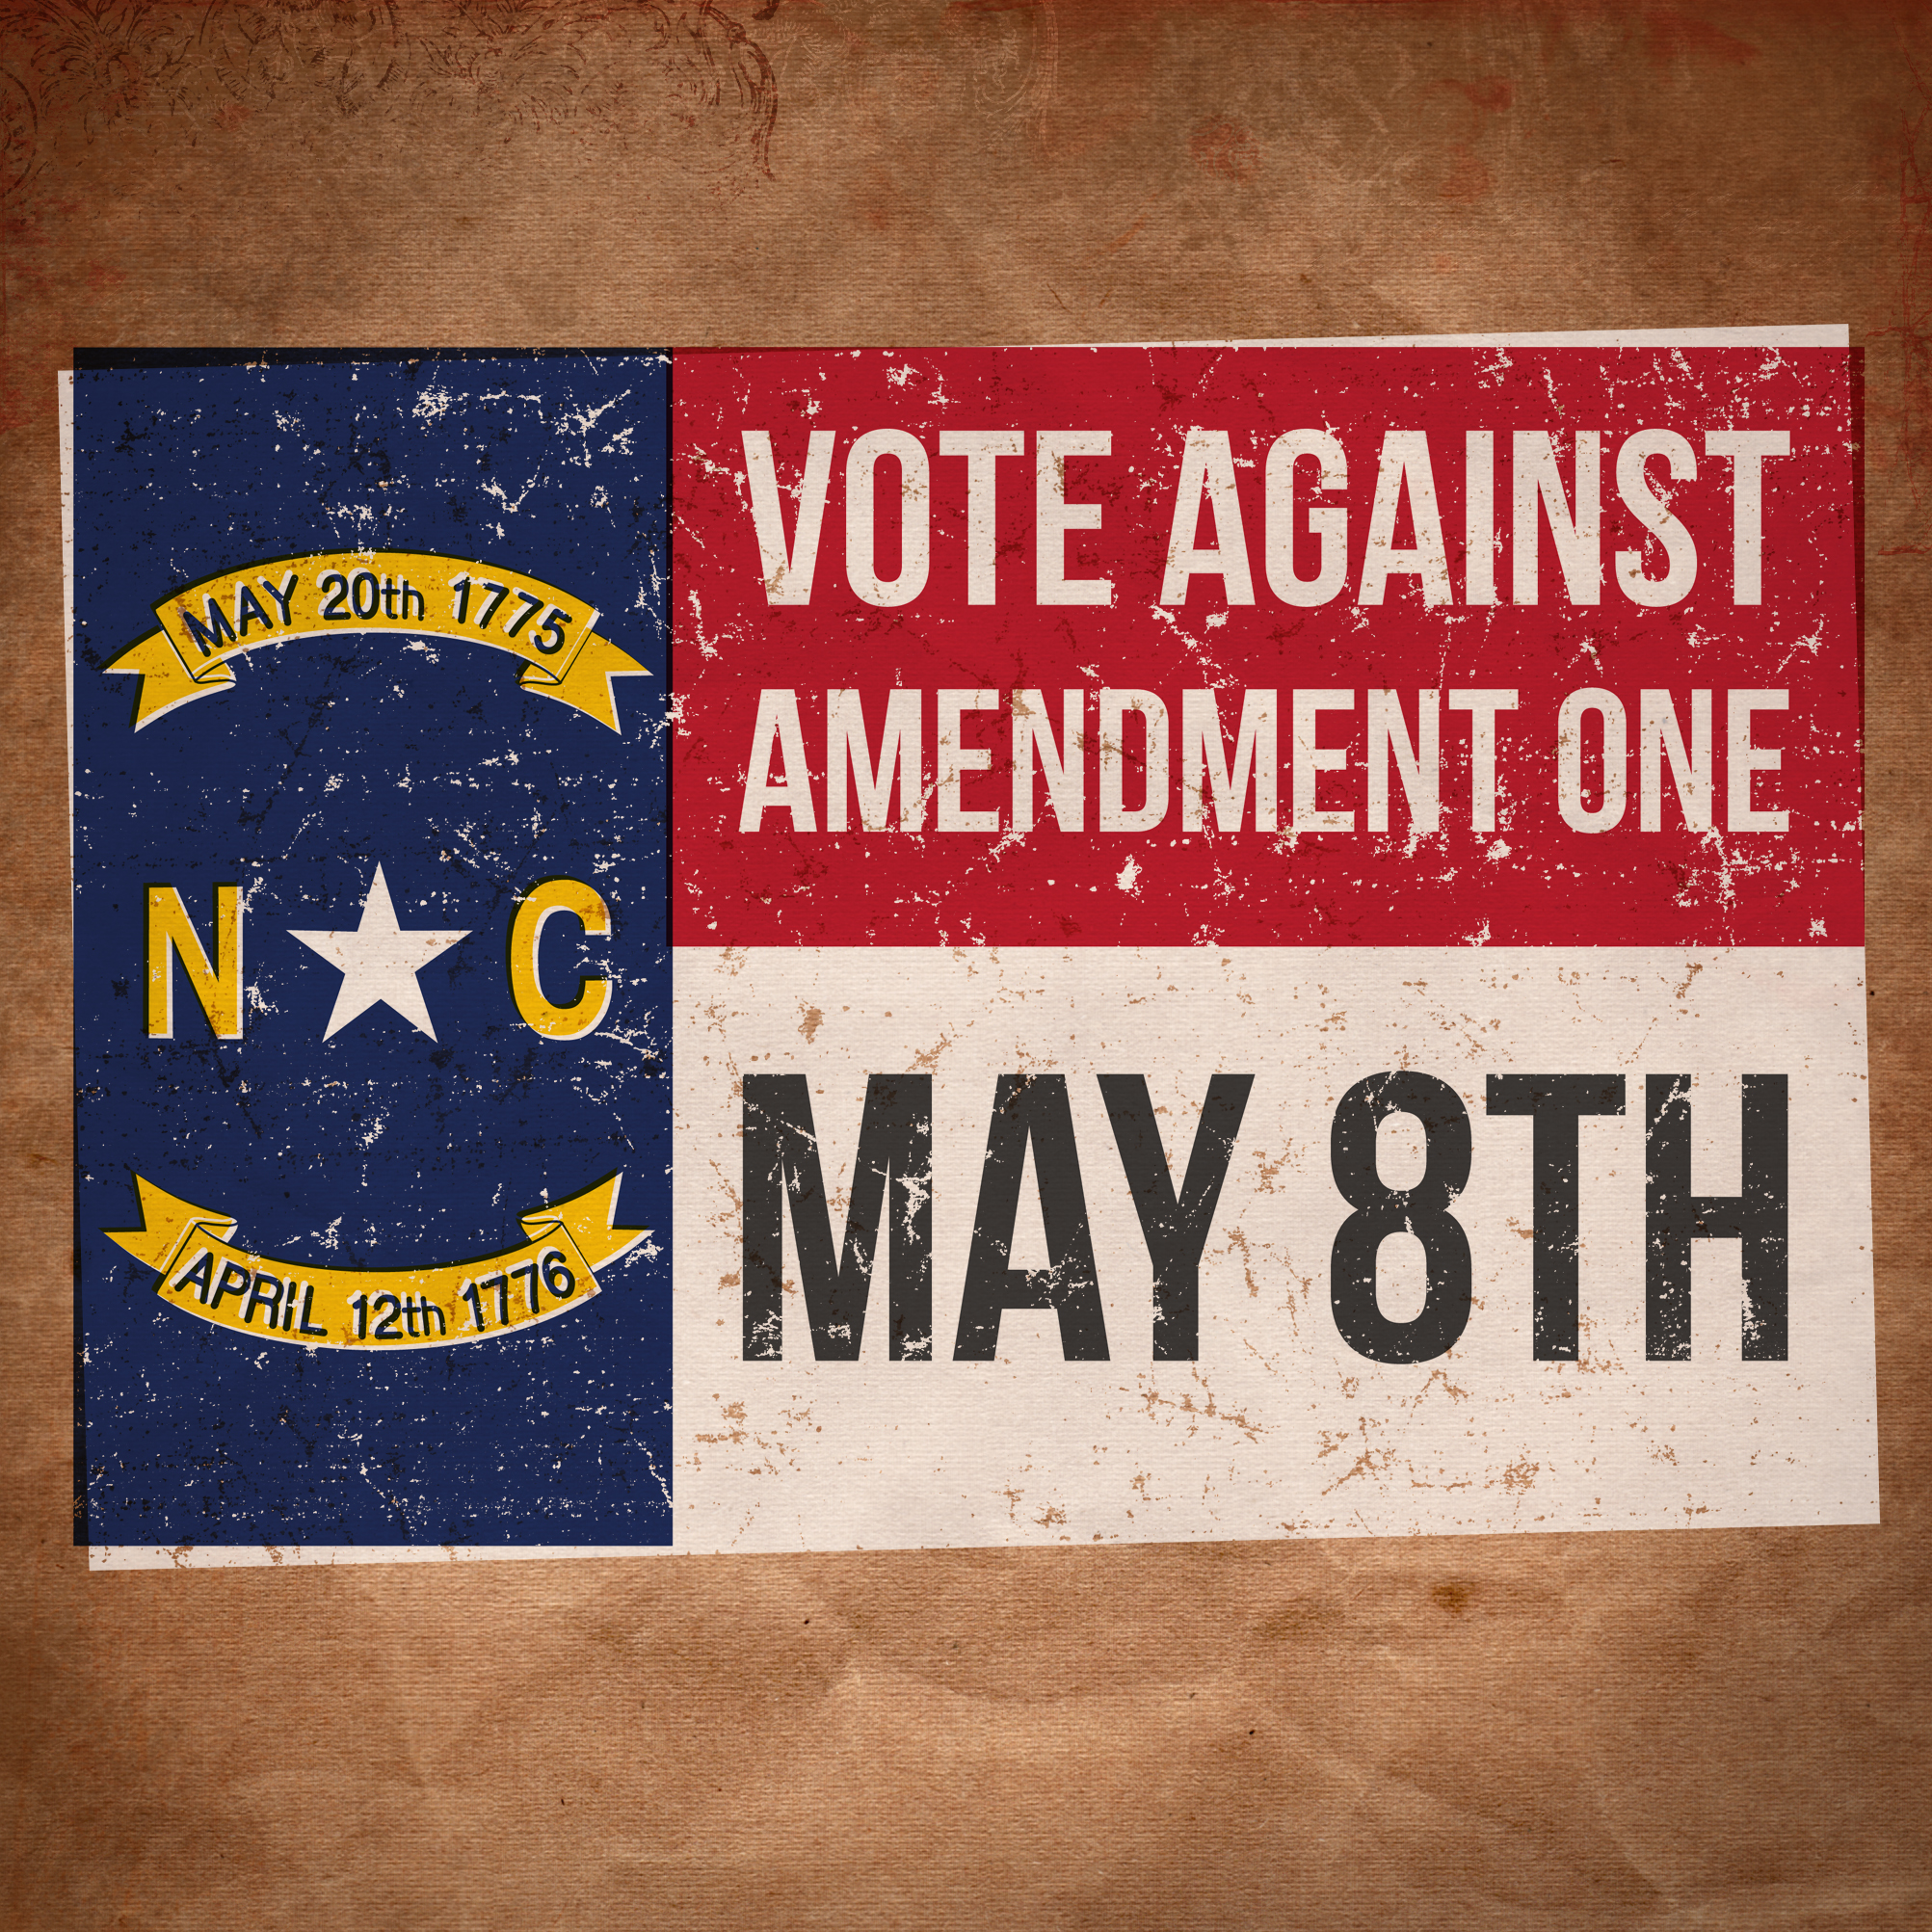 Please Vote AGAINST Amendment One On May 8th, 2012